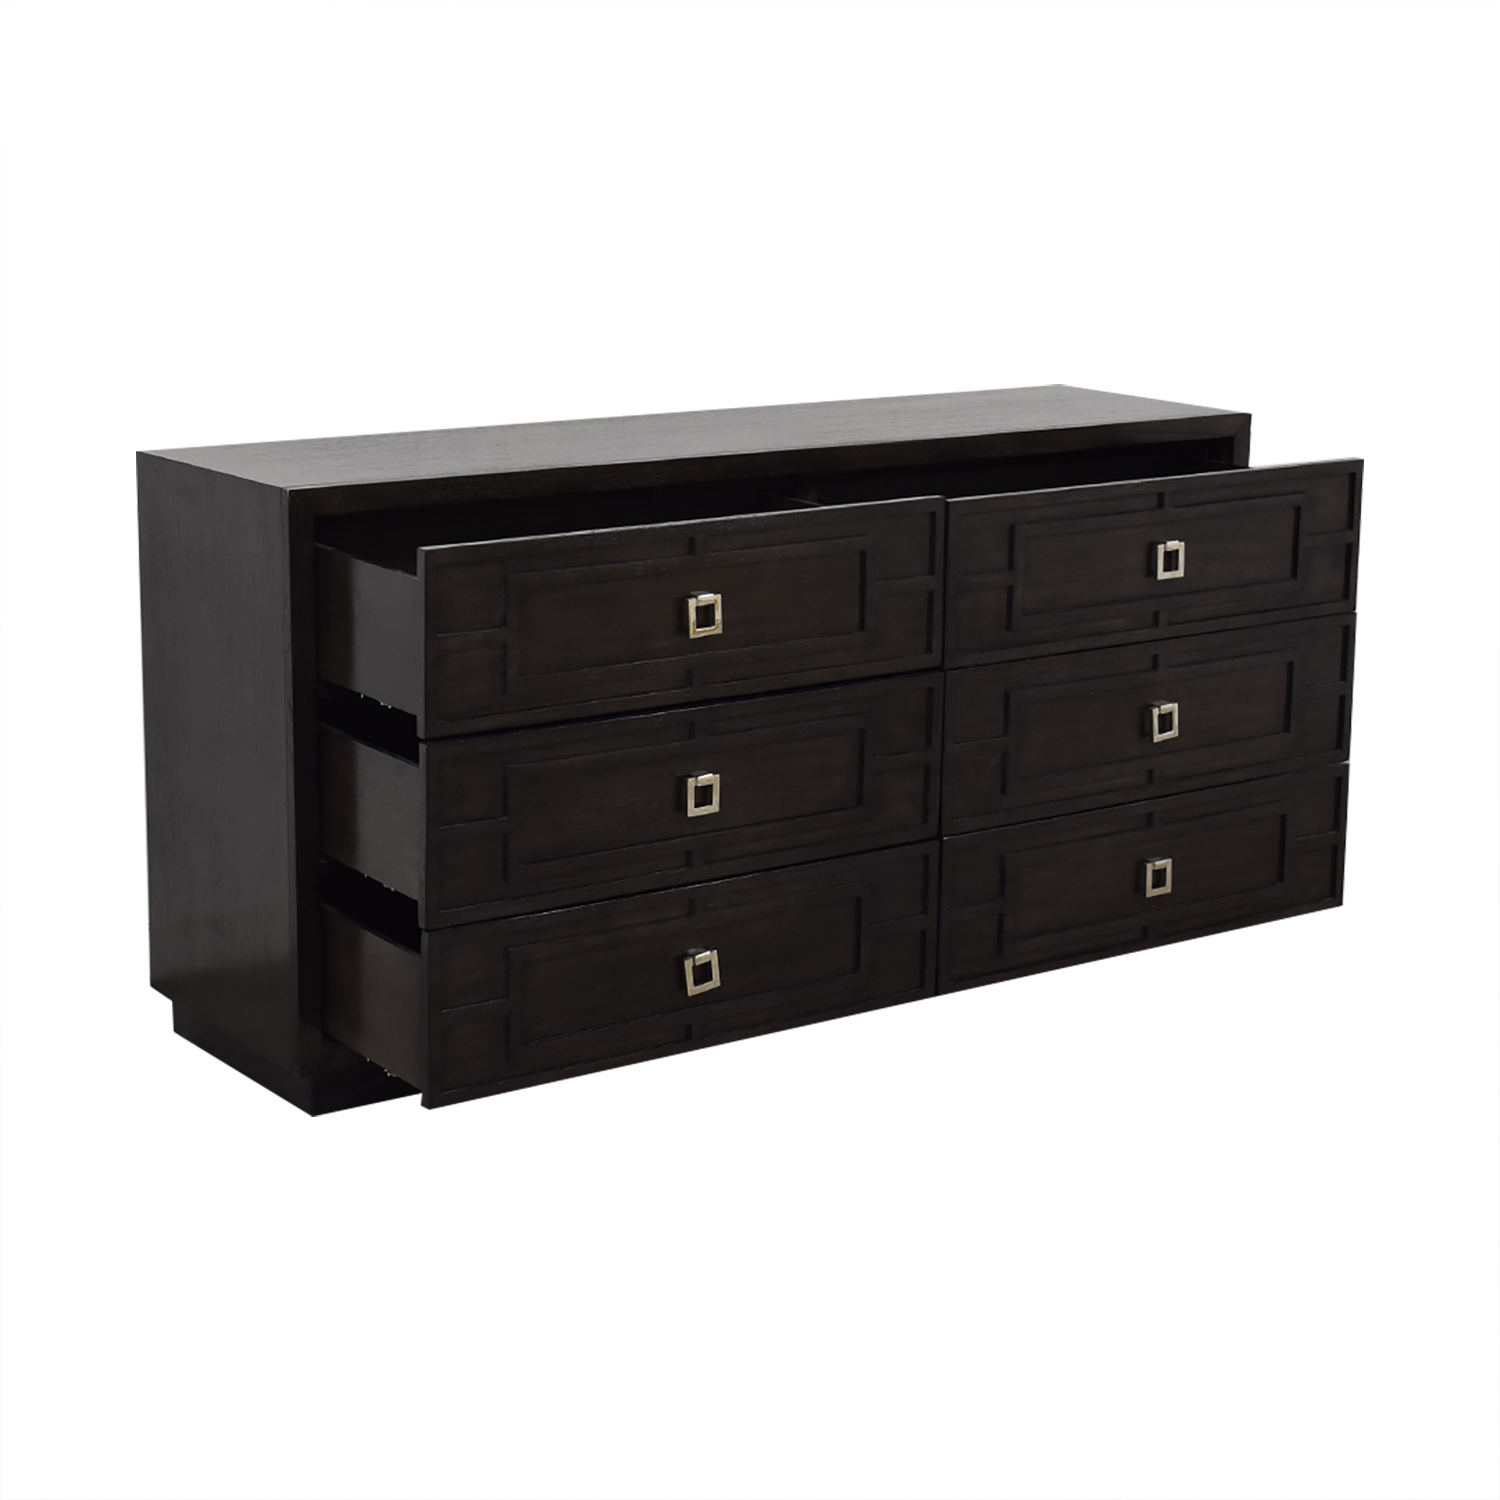 75 Off Z Gallerie Z Gallerie Gunnar Six Drawer Dresser